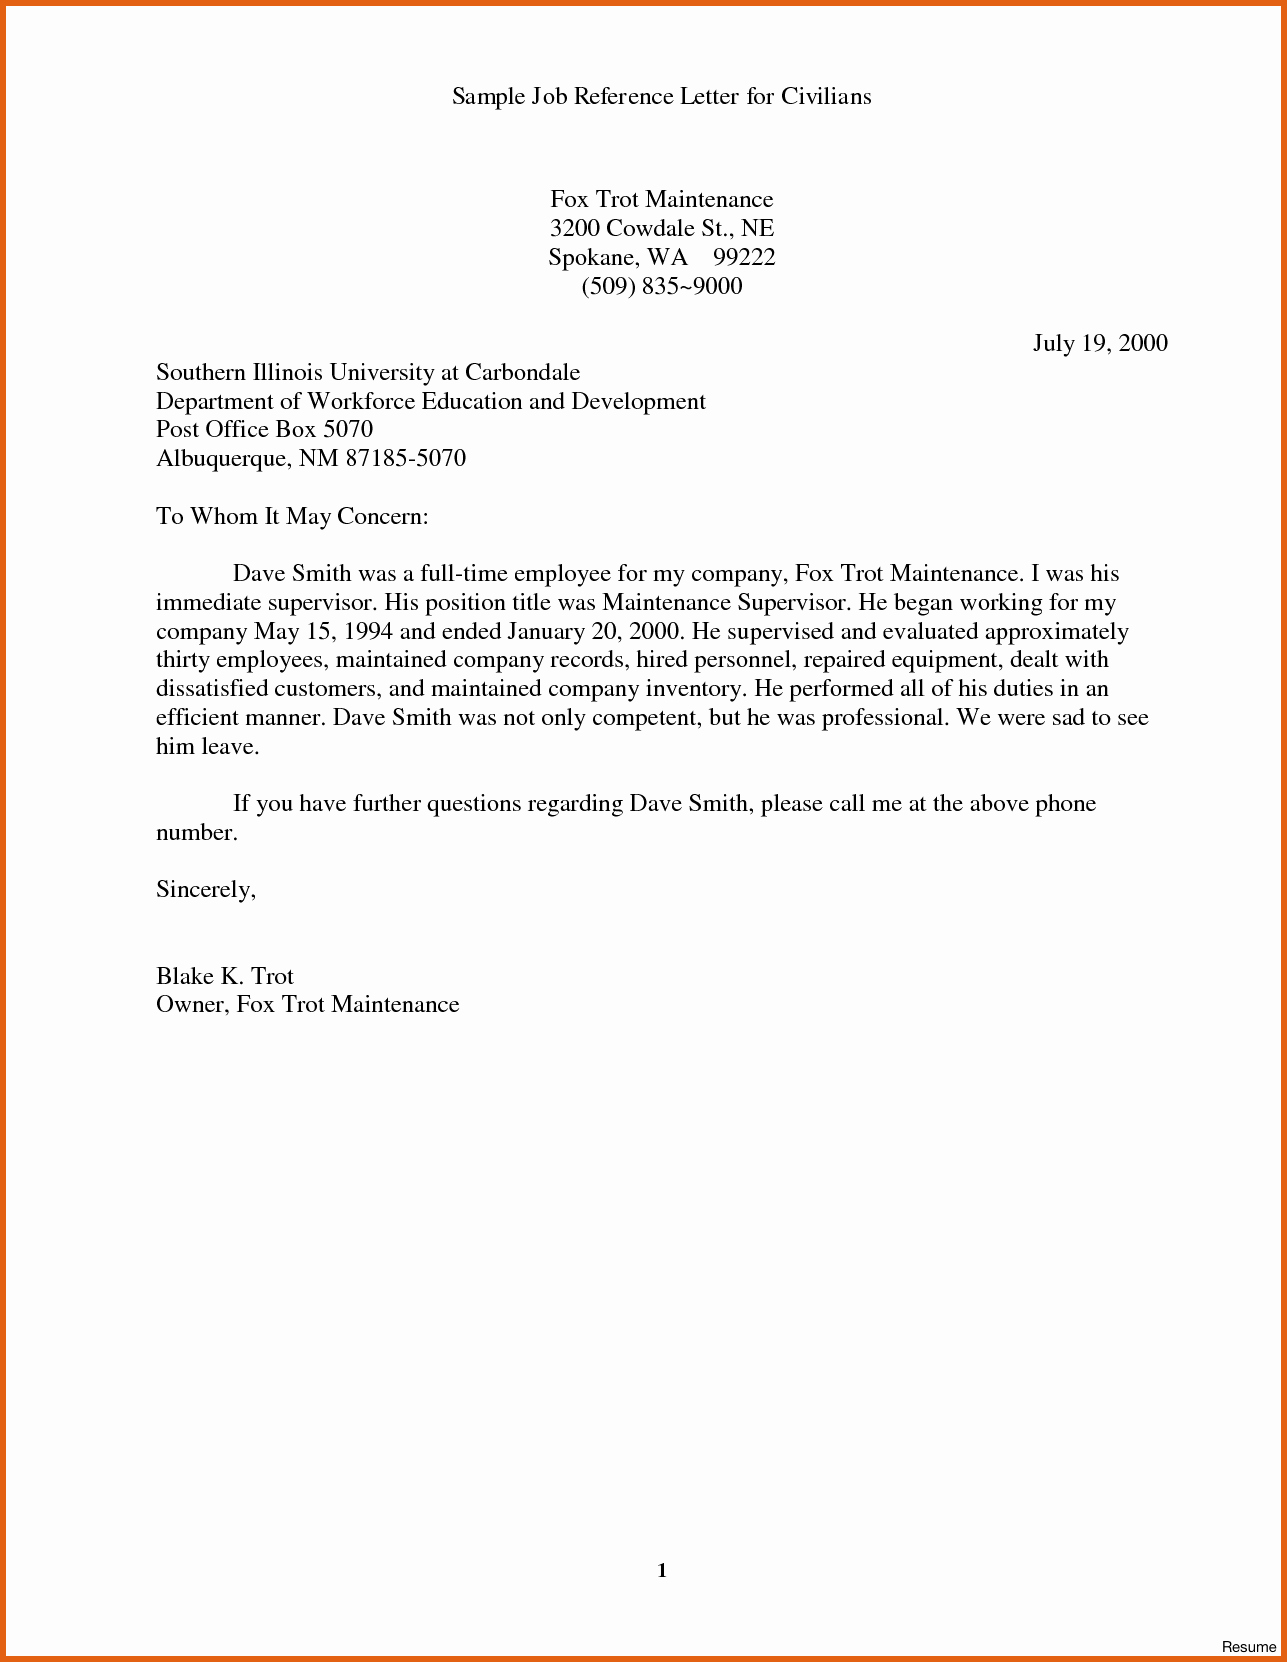 Sample Recommendation Letter for Employment Best Of Sample Reference Letter for Job Applicant